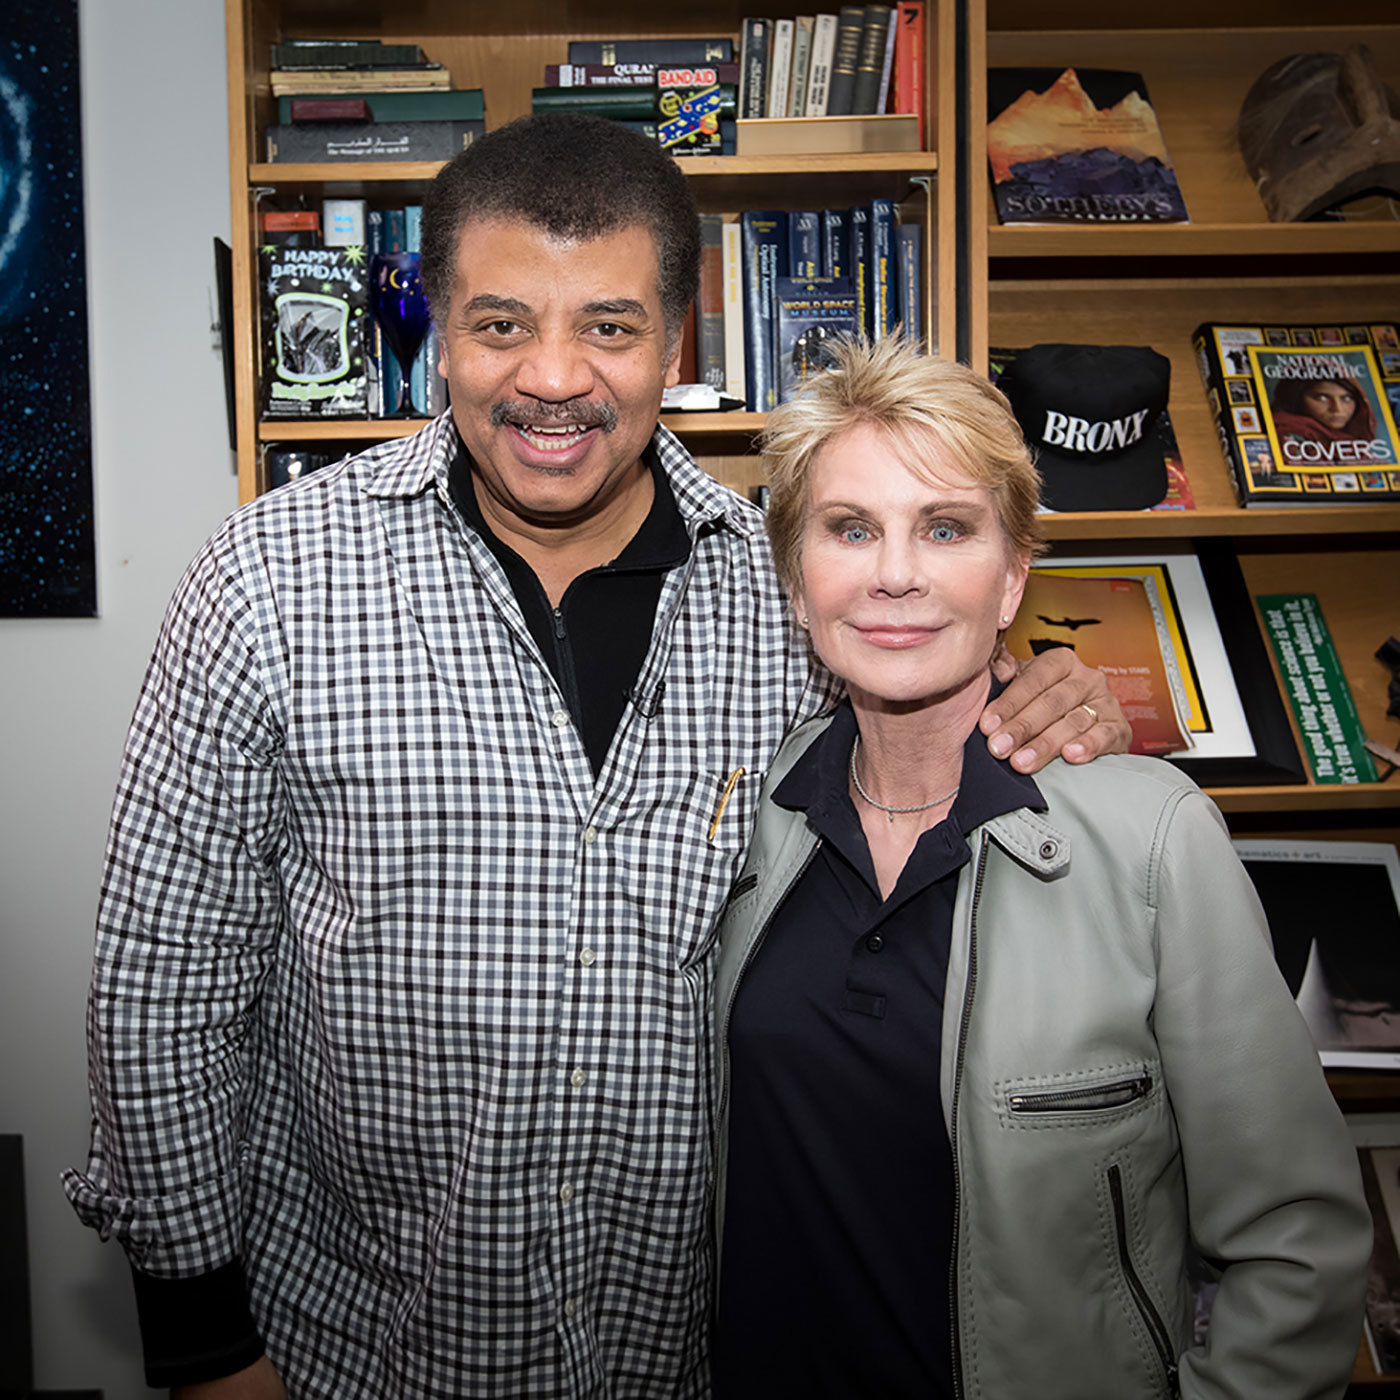 Solving Crimes with Science, with Patricia Cornwell